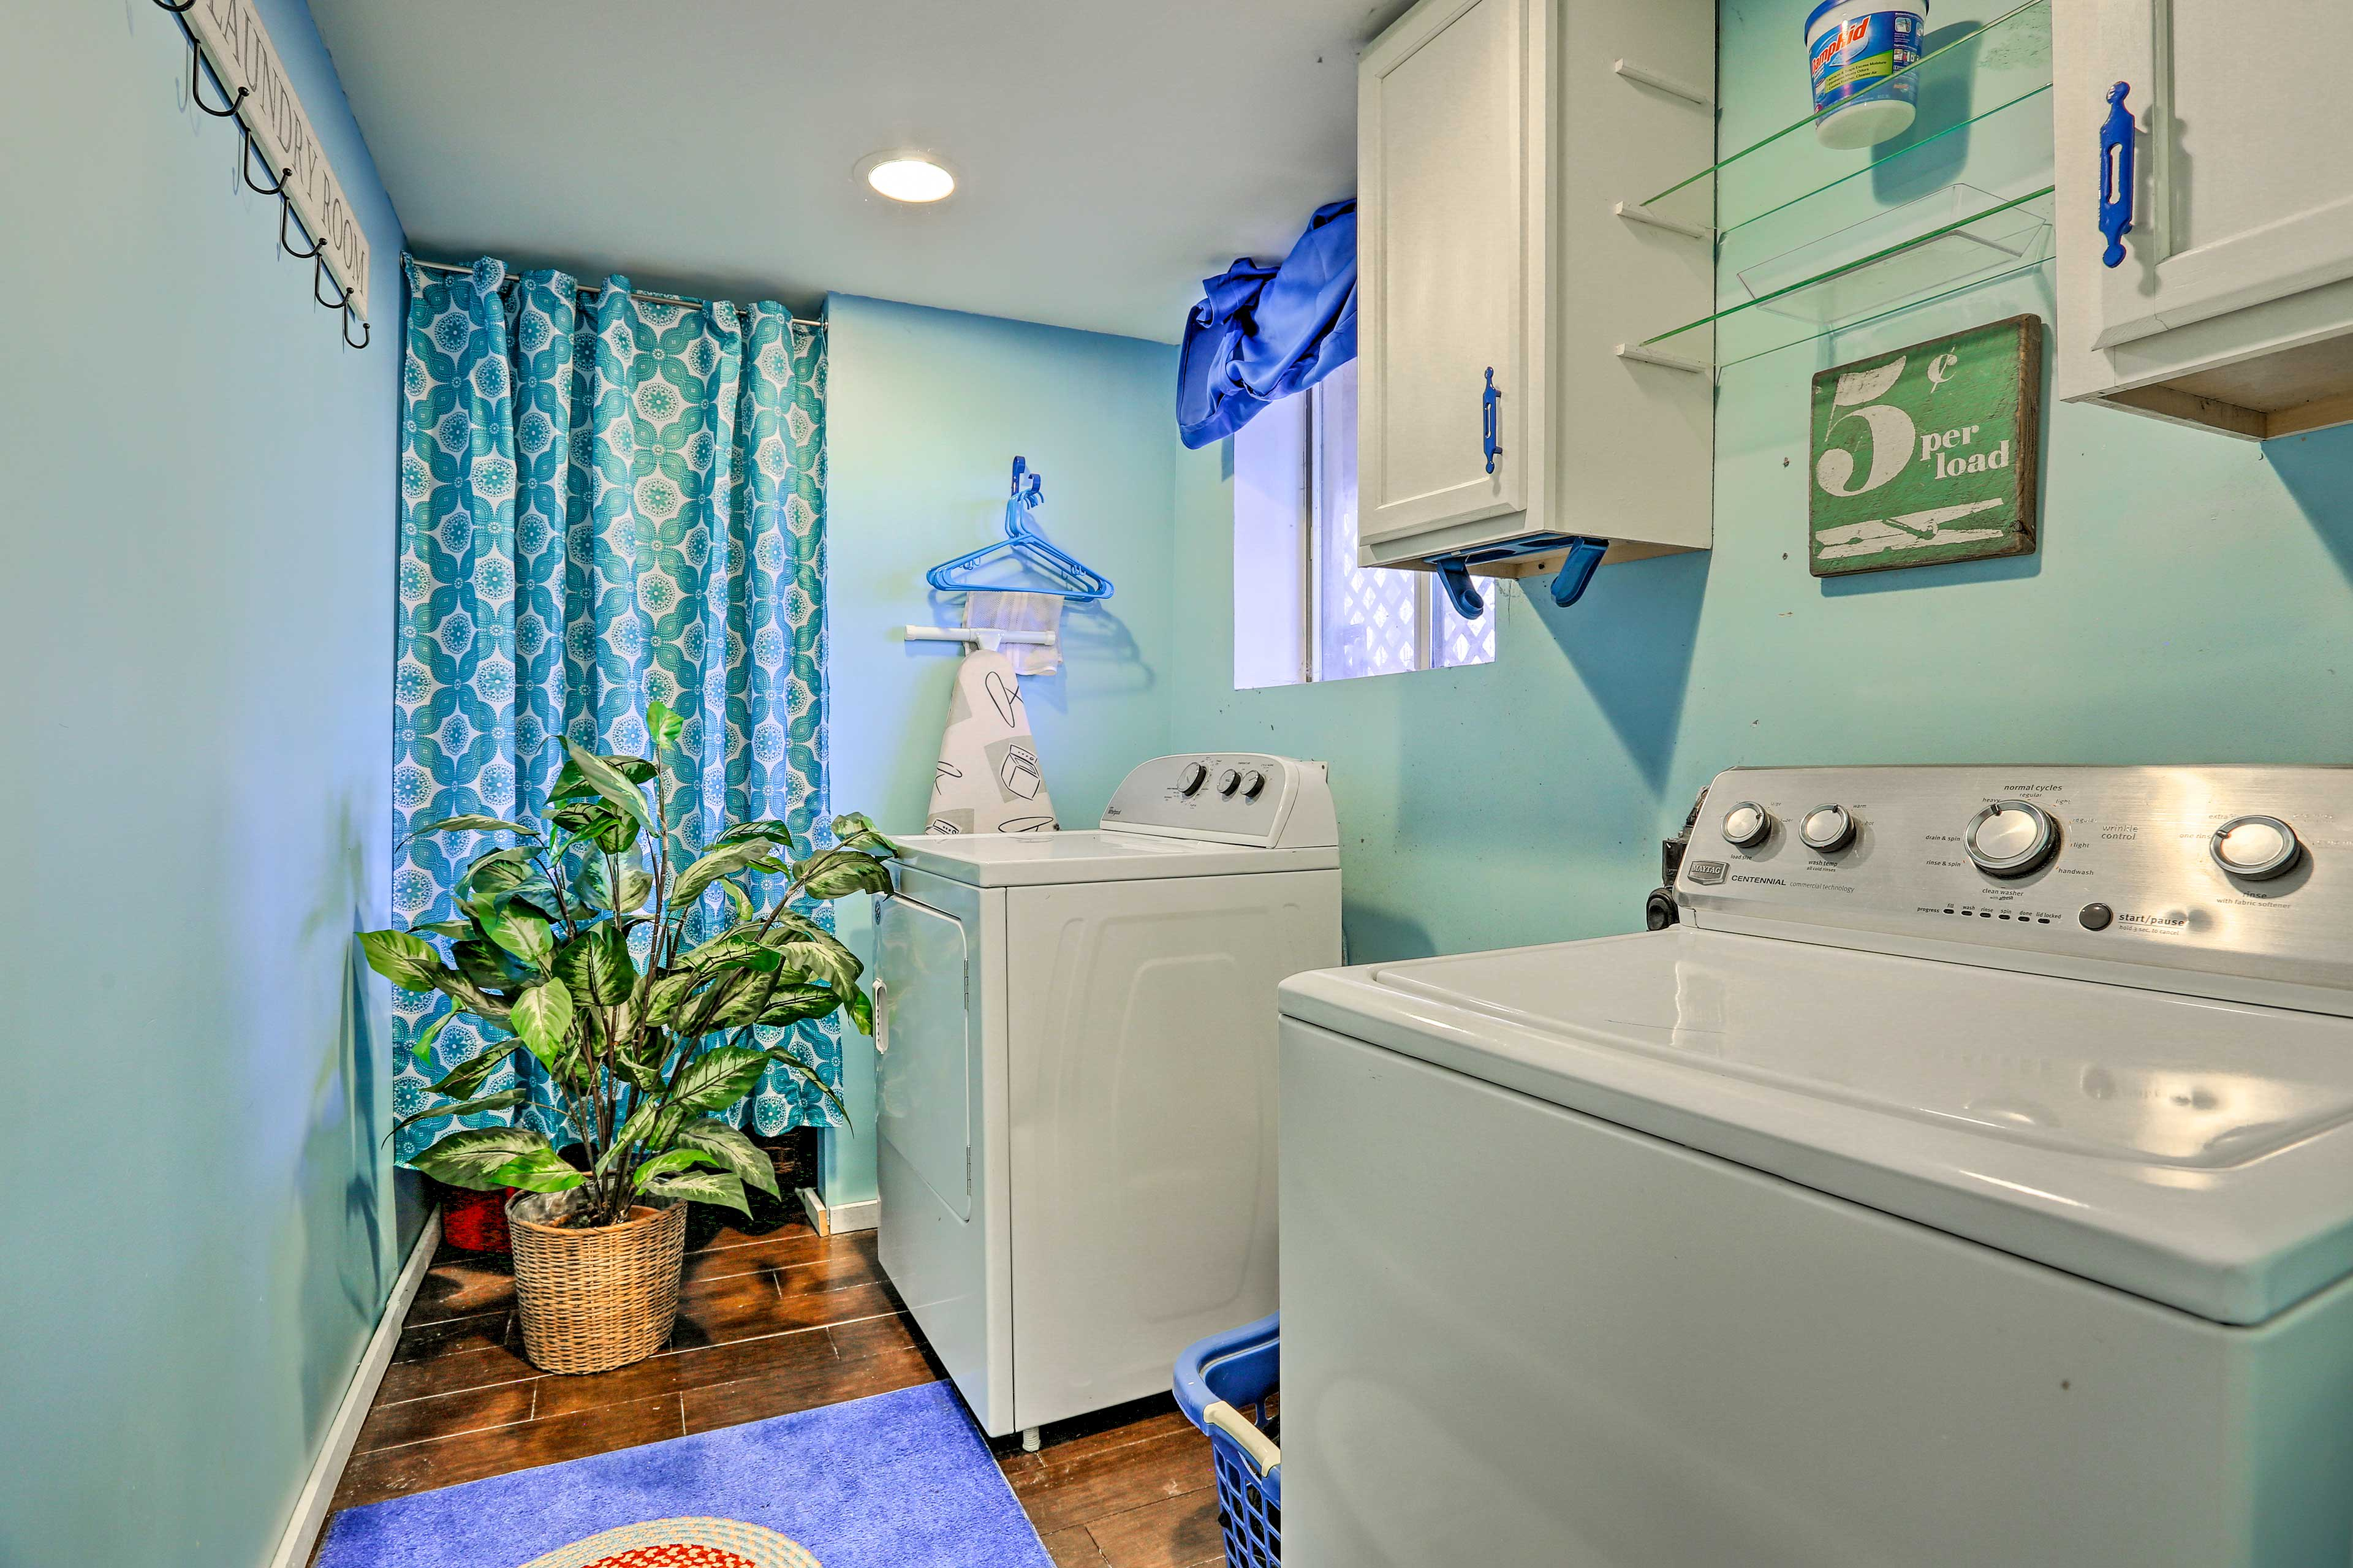 Keep your belongings fresh with the vacation rental's laundry machines.